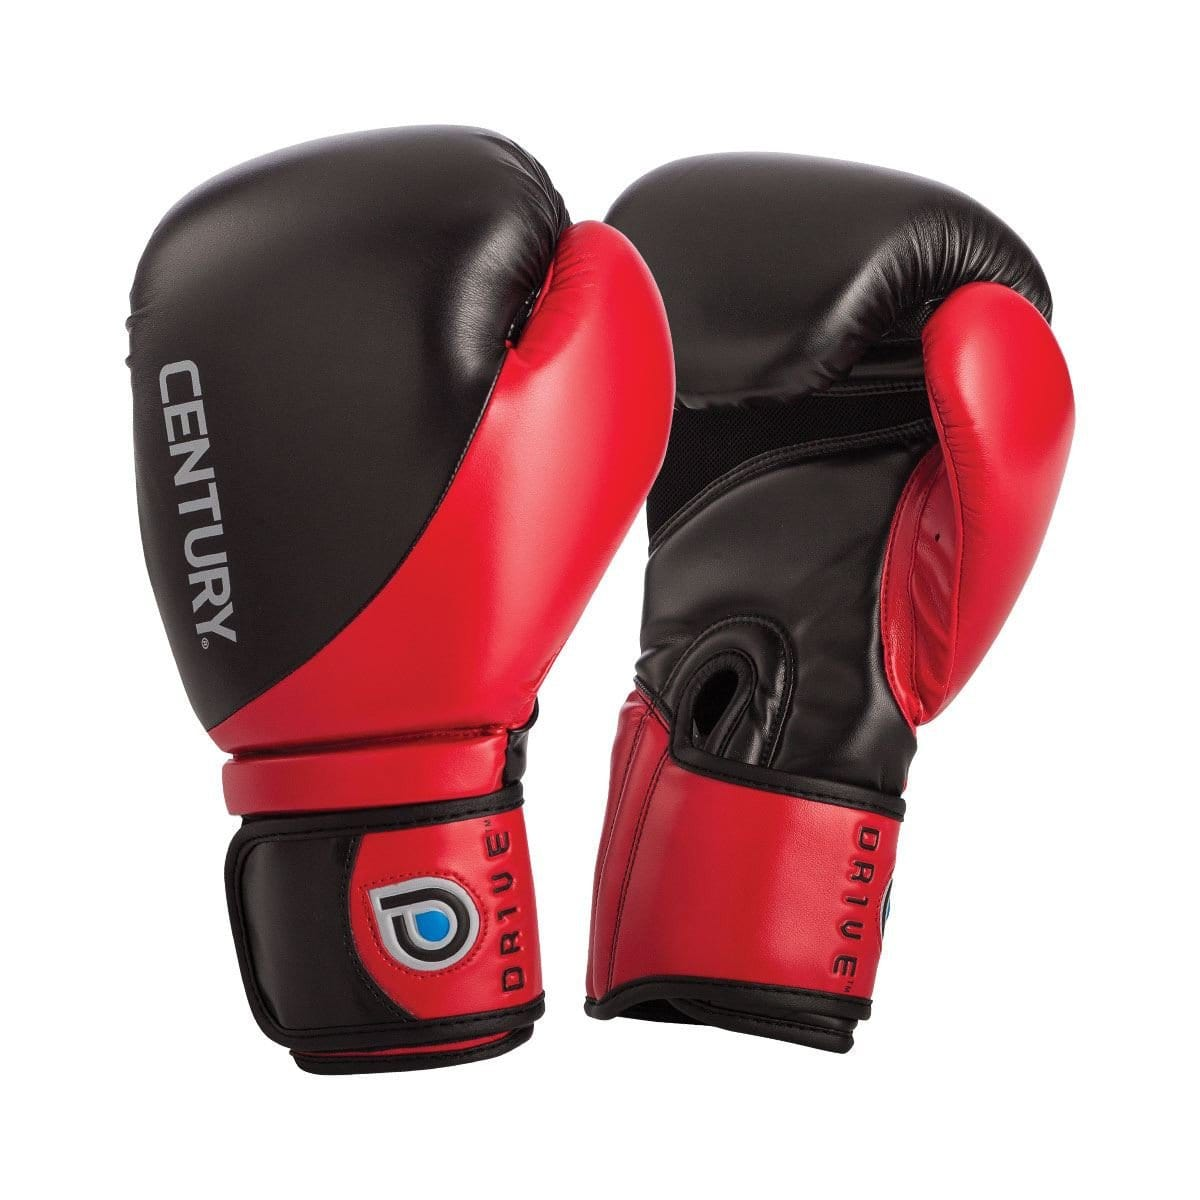 Drive Boxing Gloves c141003P